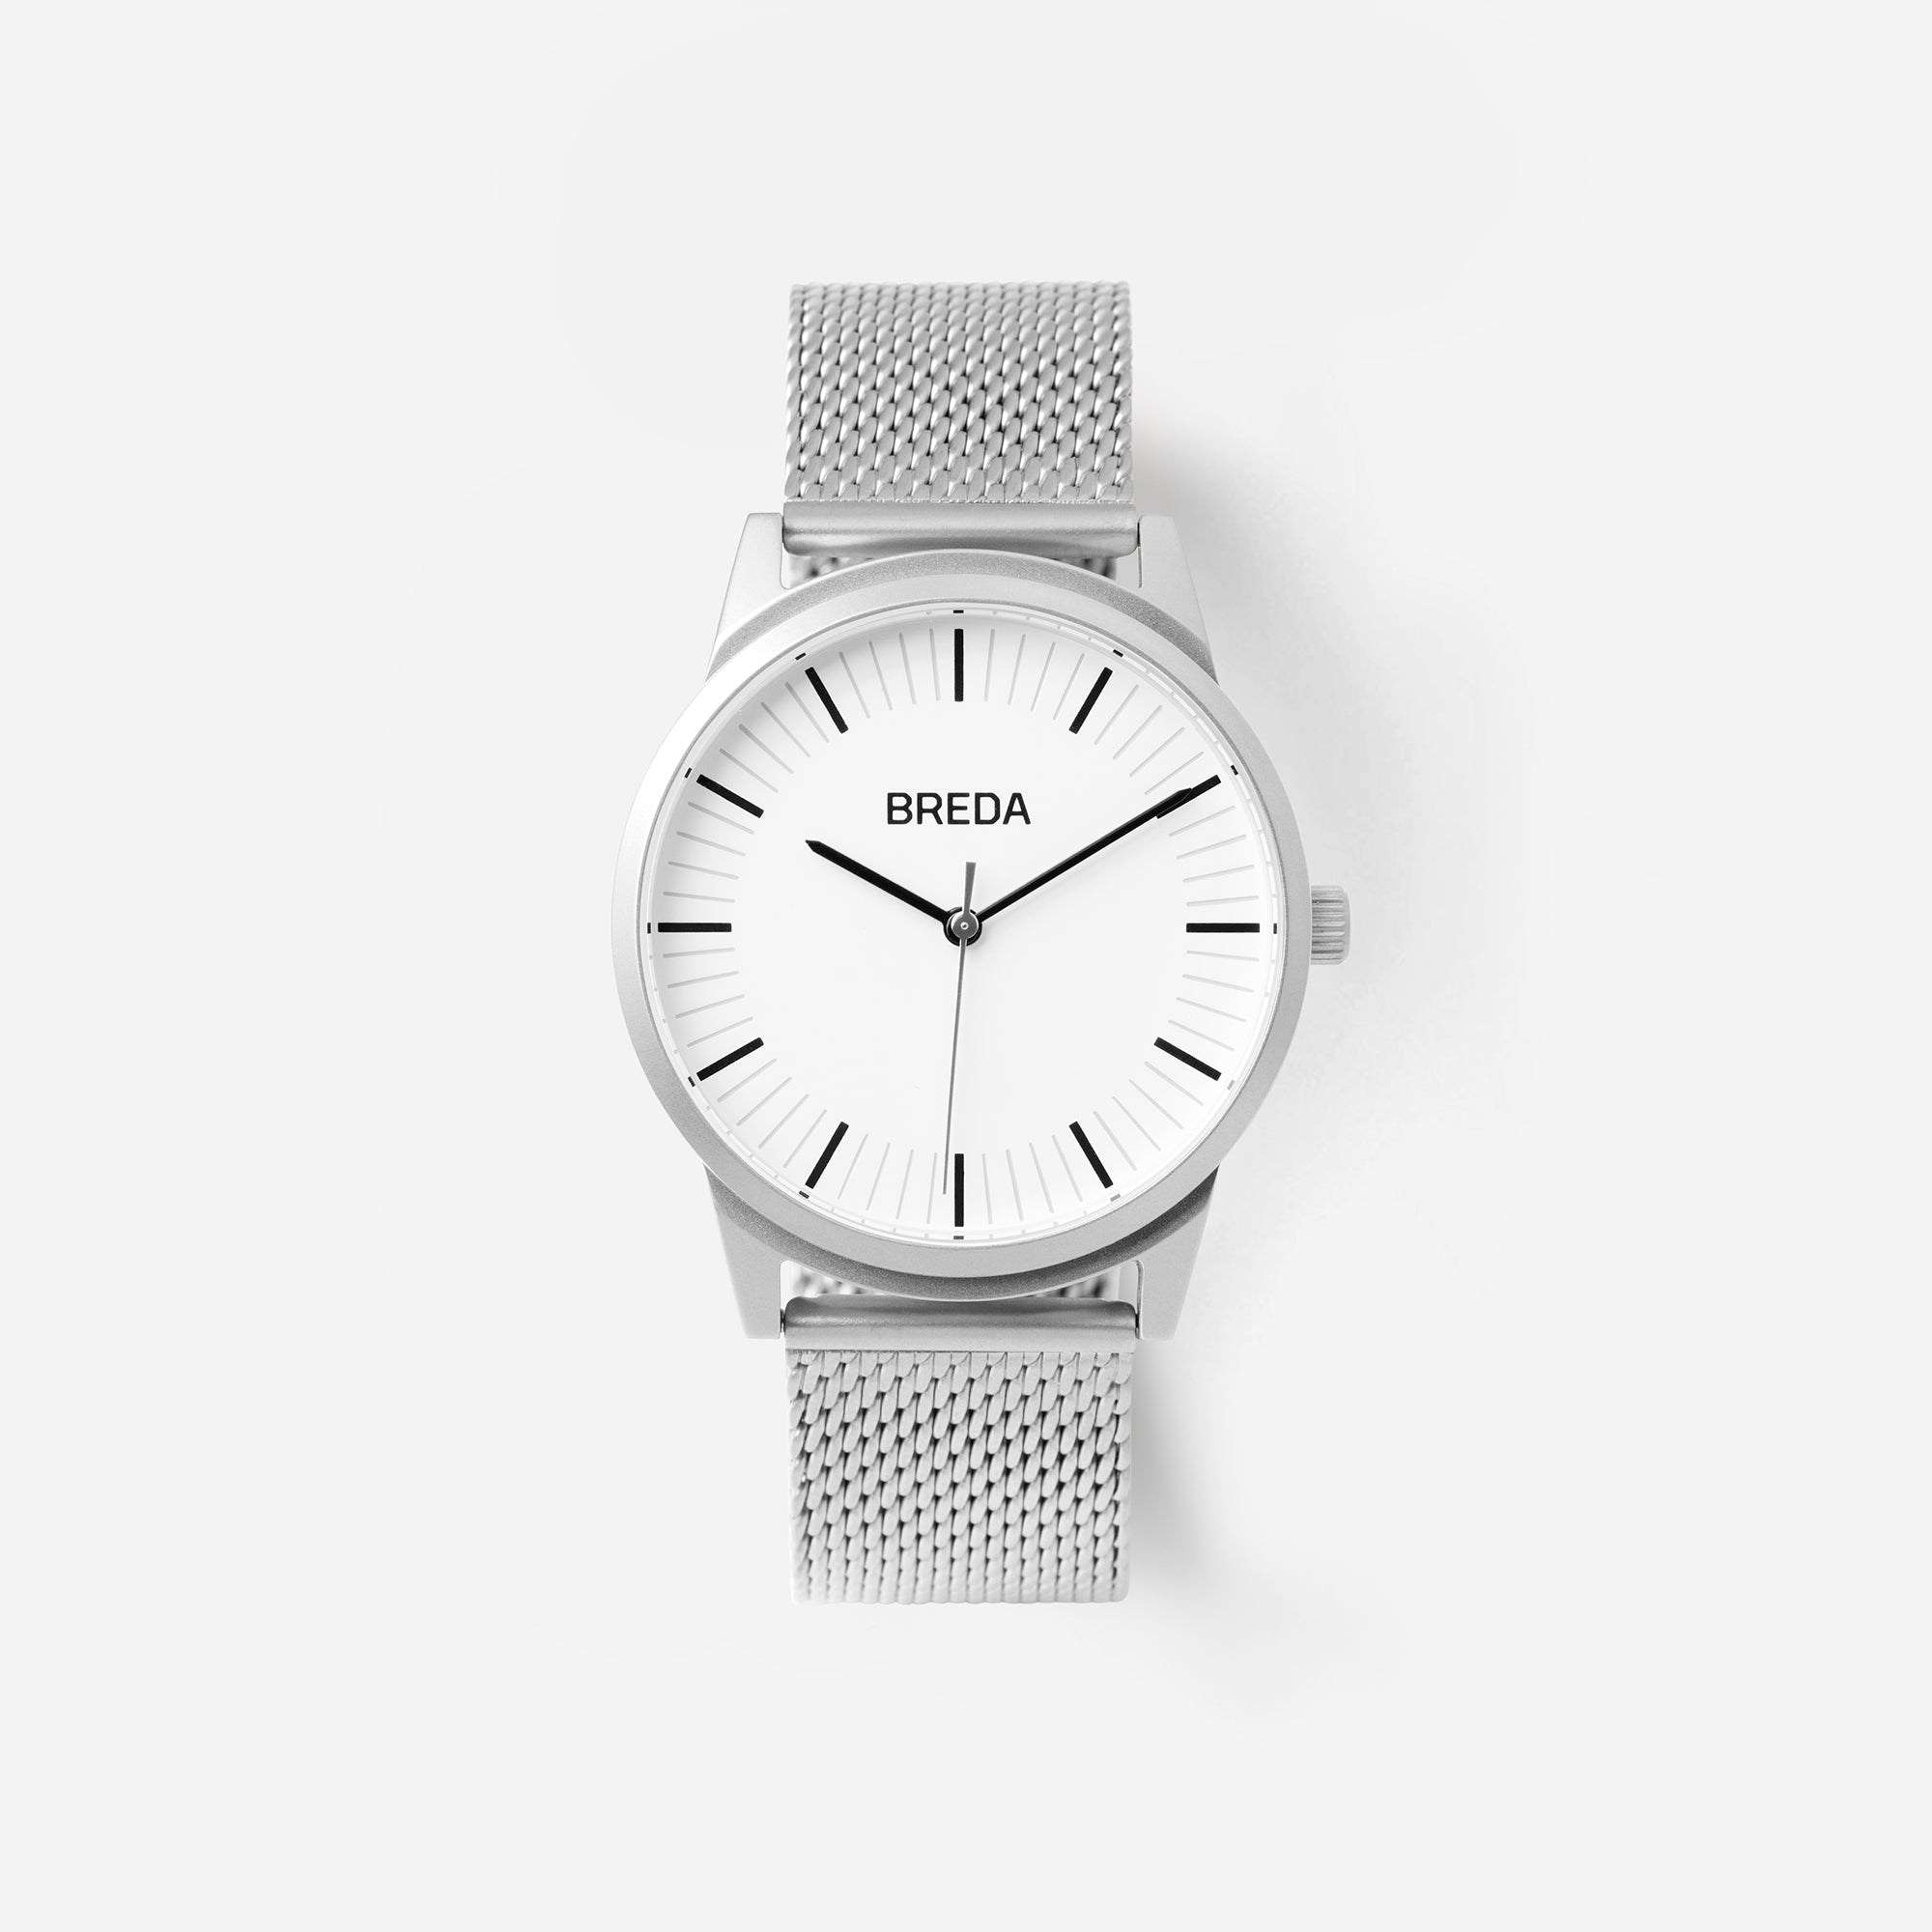 //cdn.shopify.com/s/files/1/0879/6650/products/breda-bresson-5020j-silver-mesh-watch-front_d0eab54e-a38c-4c91-a524-bb7cc59ed1d1_1024x1024.jpg?v=1542823678